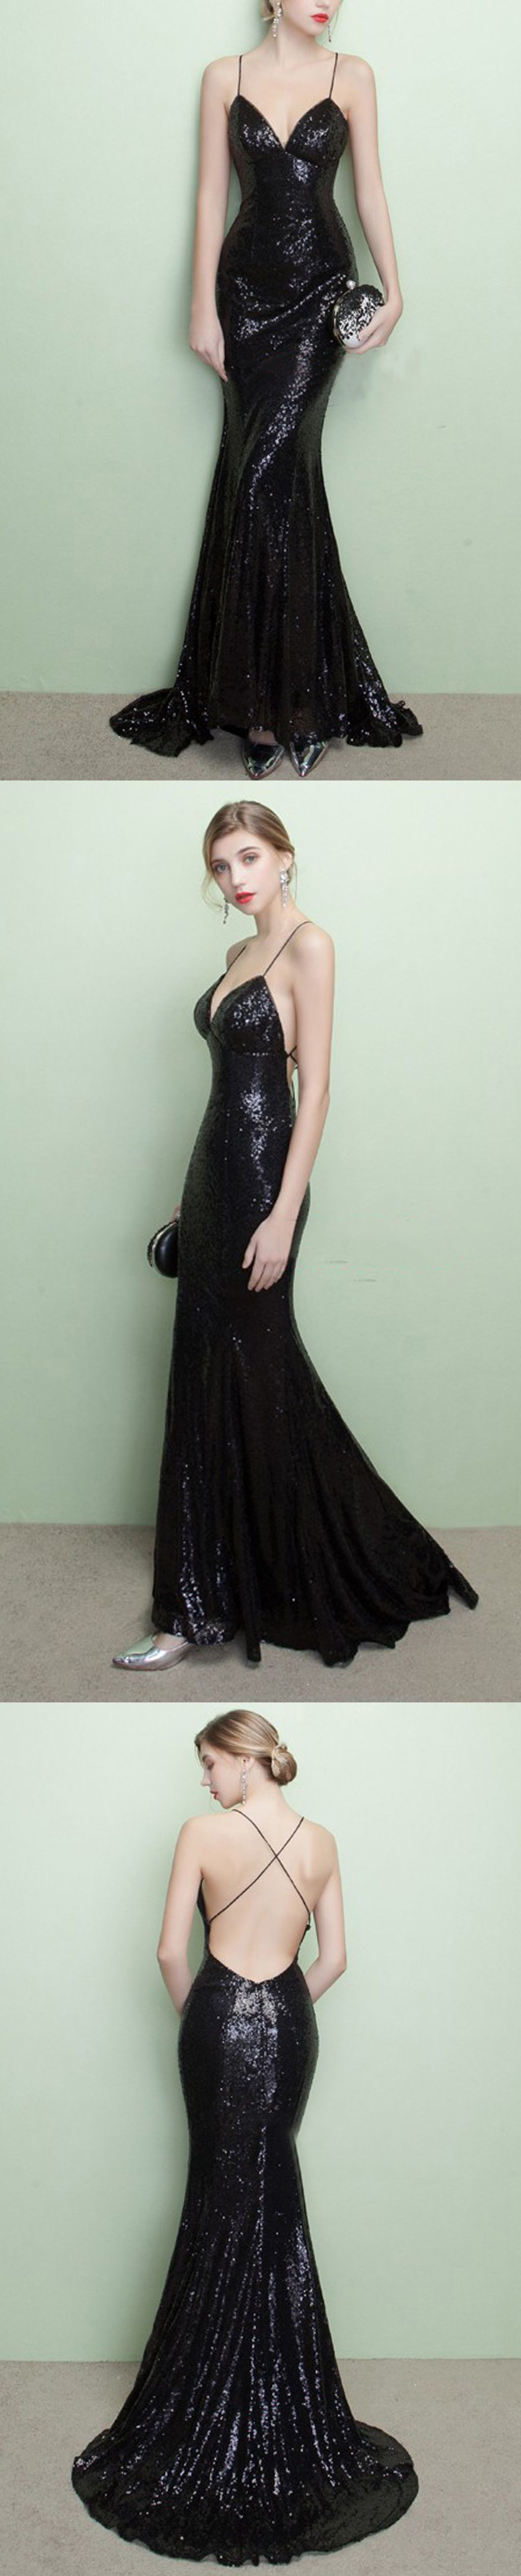 Sparkly black sequins prom dresslace up back prom dressspaghetti